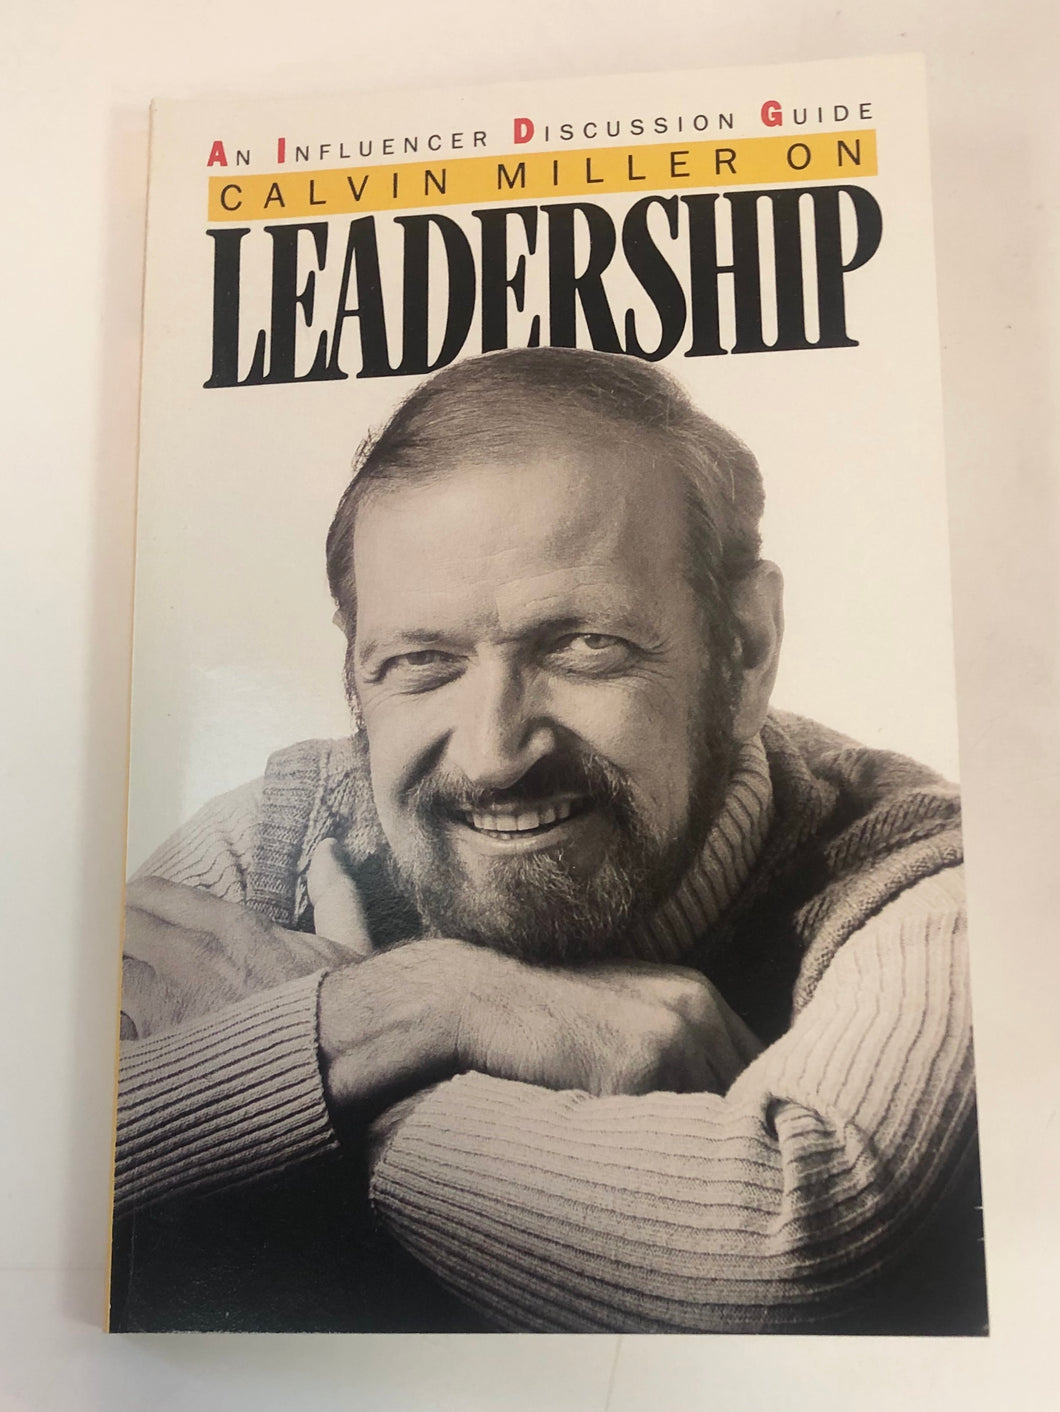 Calvin Miller on Leadership: An Influencer Discussion Guide by Calvin Miller